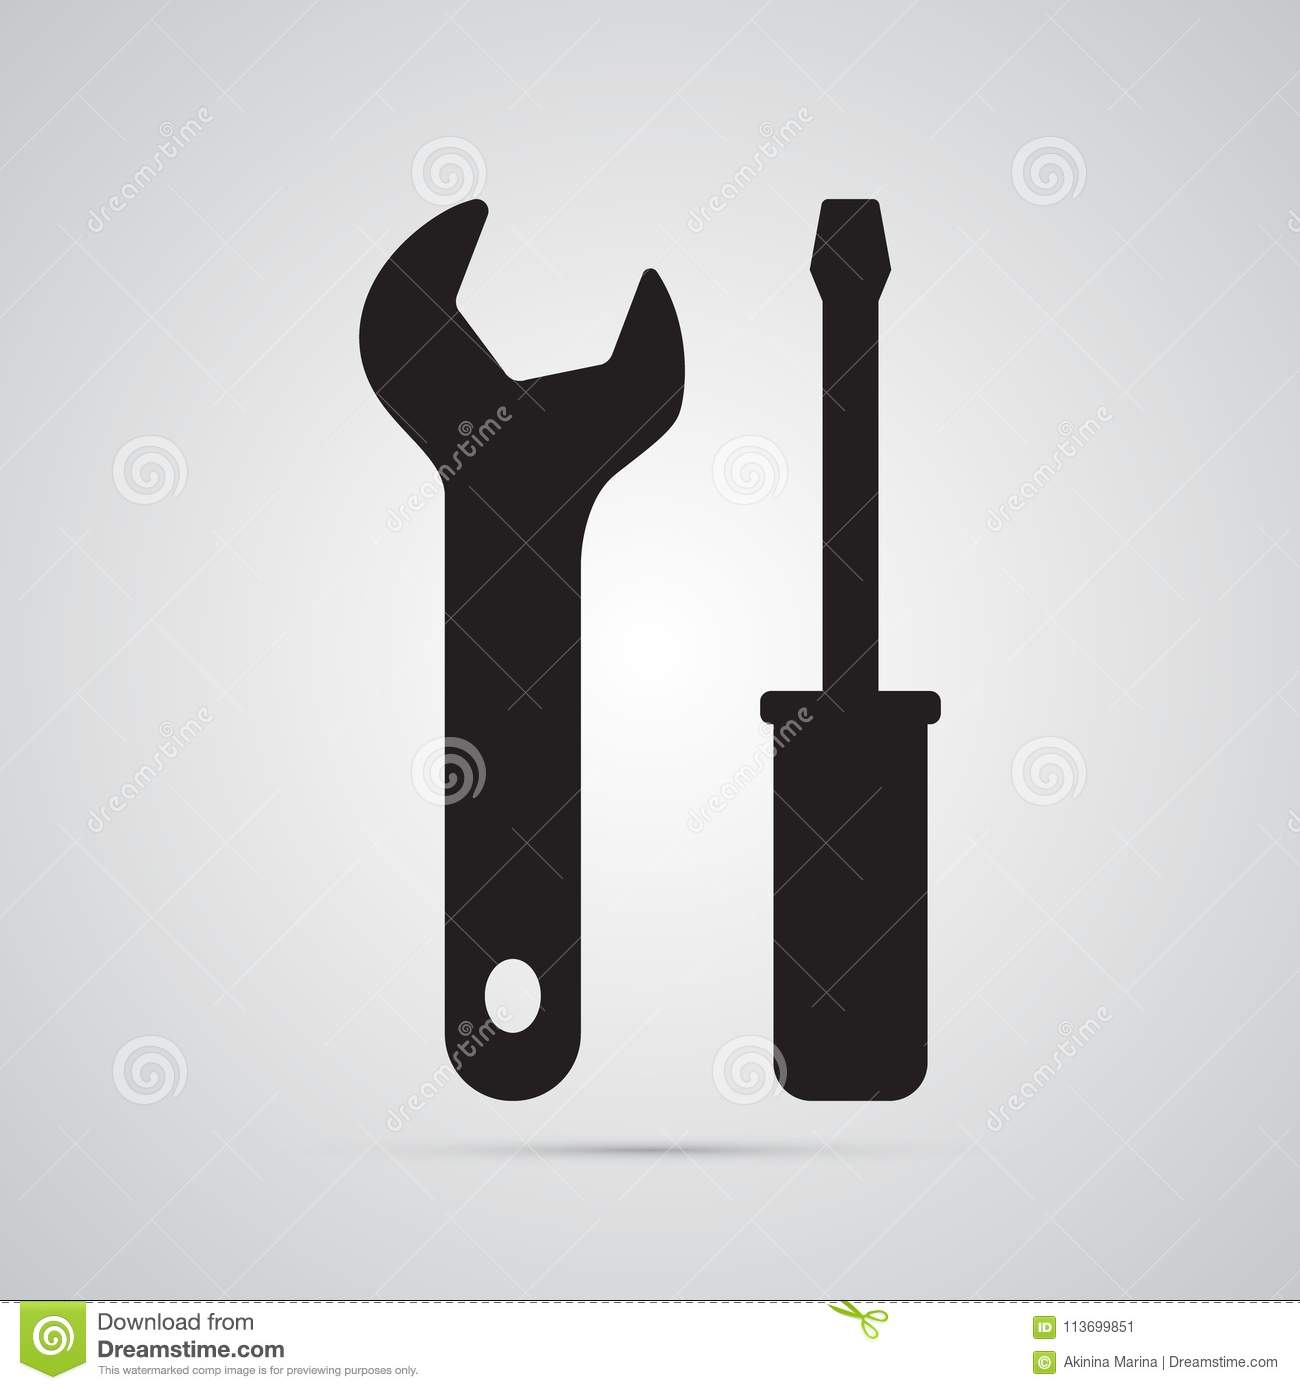 Silhouette flat icon, simple vector design. Turnscrew and wrench